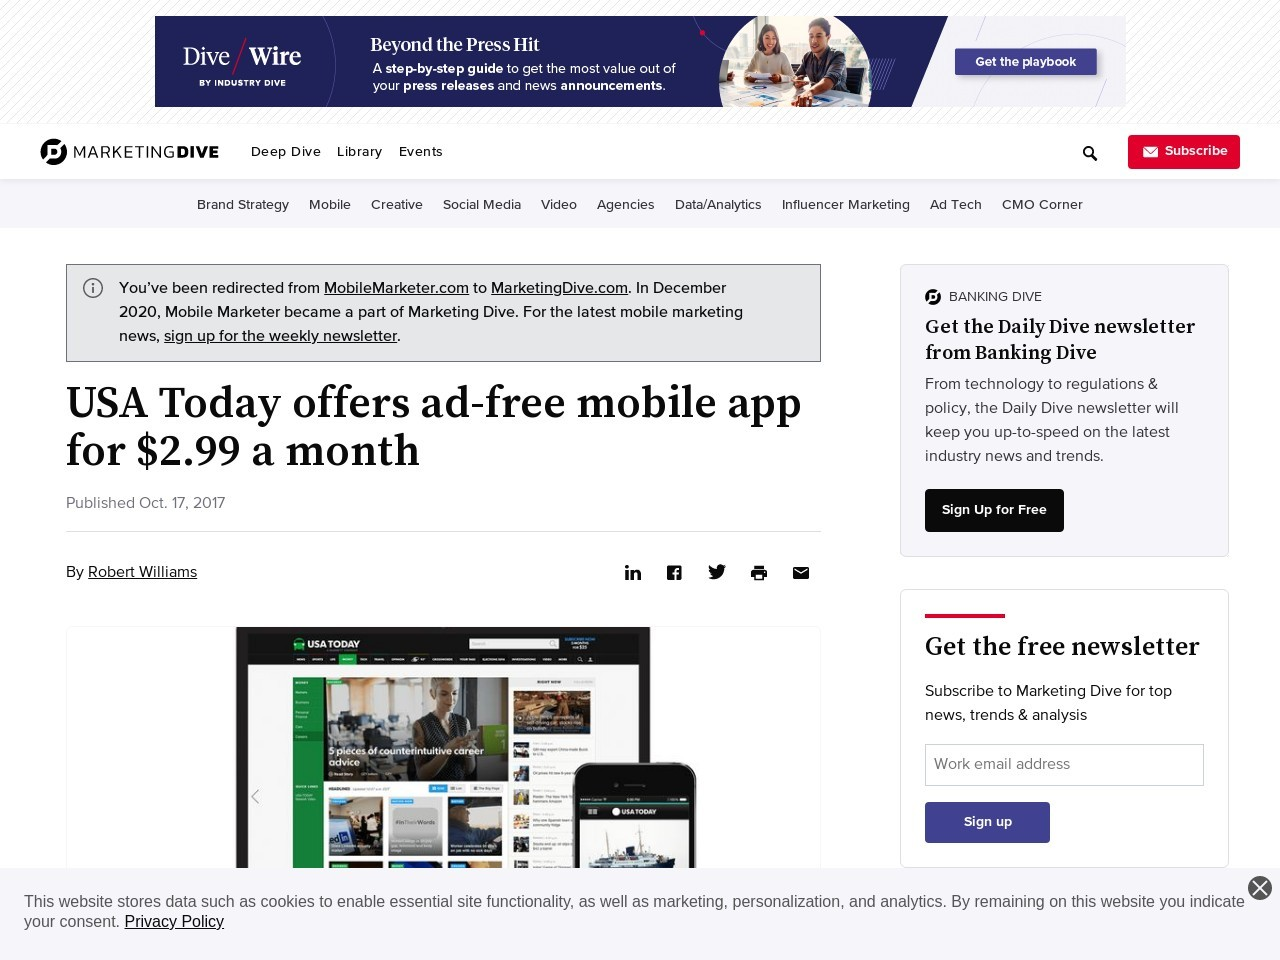 USA Today offers ad-free mobile app for $2.99 a month